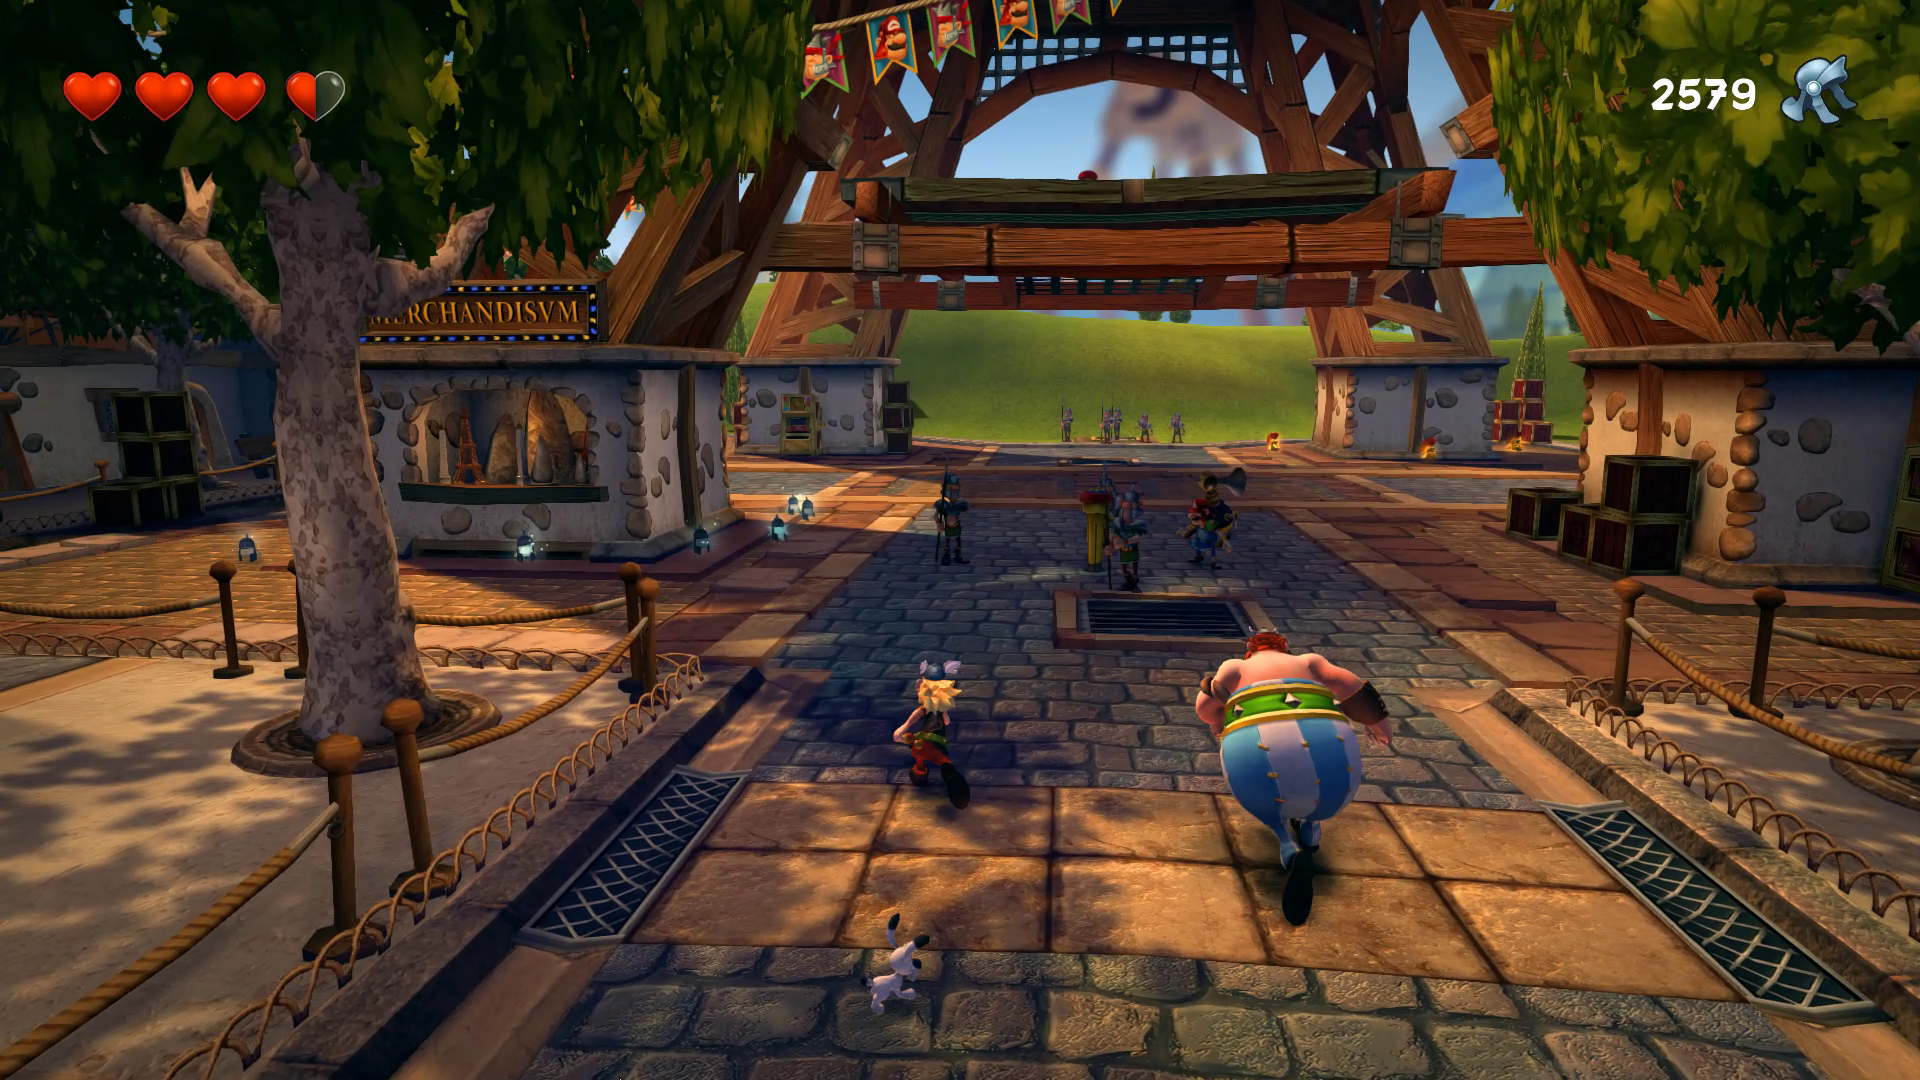 Asterix Obelix Xxl 2 Are Getting Remastered For The Ps4 Perezstart